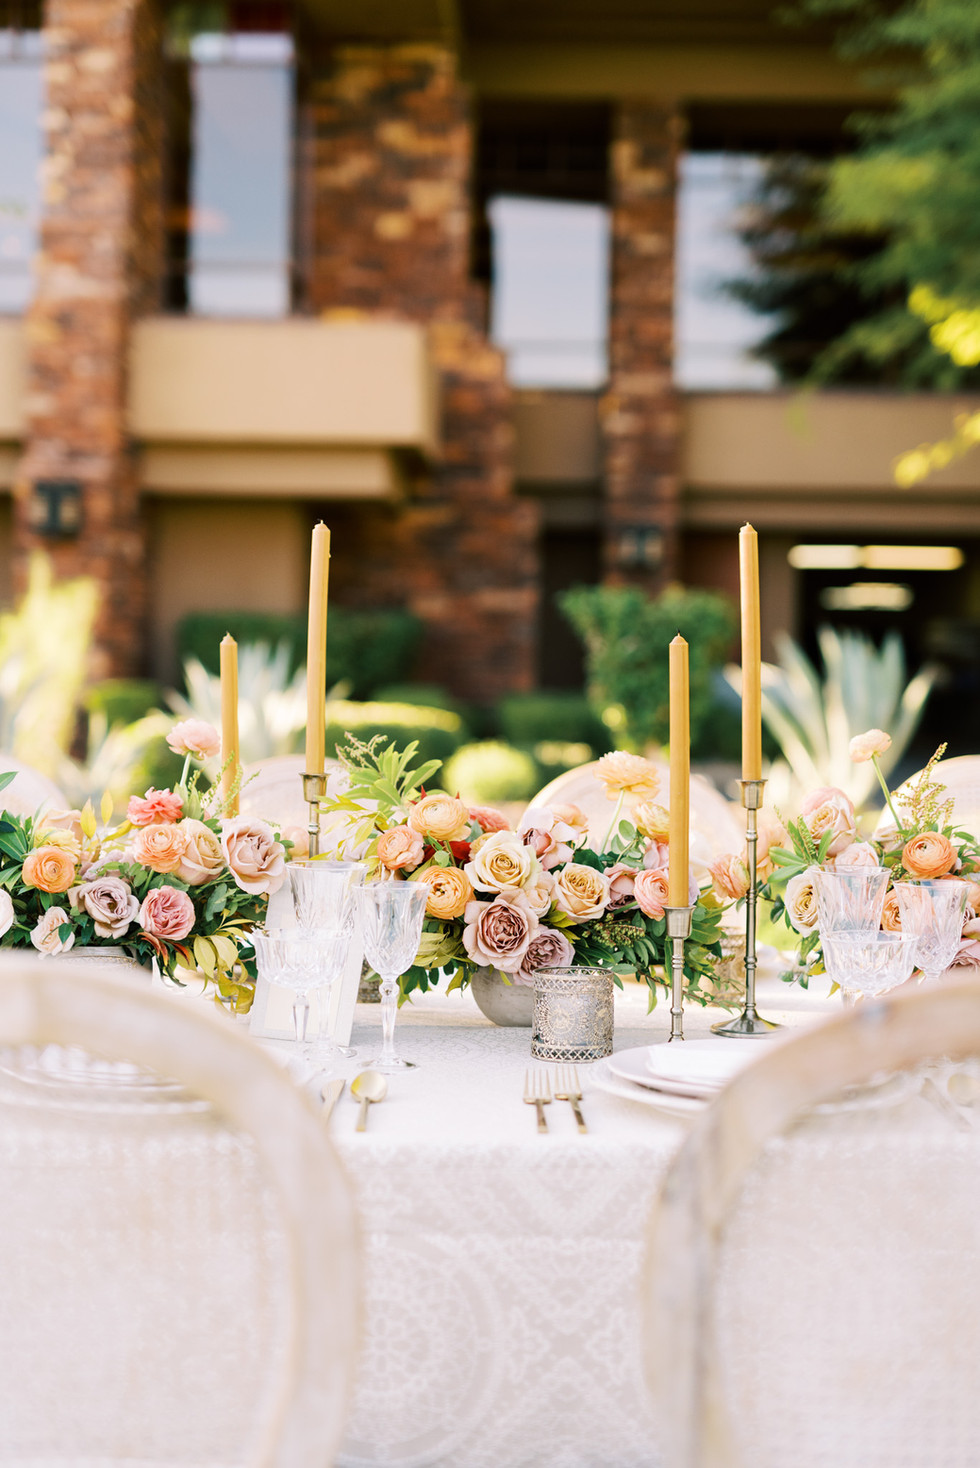 WEDDING CENTERPIECES WITH GARDEN ROSES AND RANUNCULUS IN SHADES OF MUSTARD, CORAL, AND TAUPE. PHOTO: KRISTEN KAY